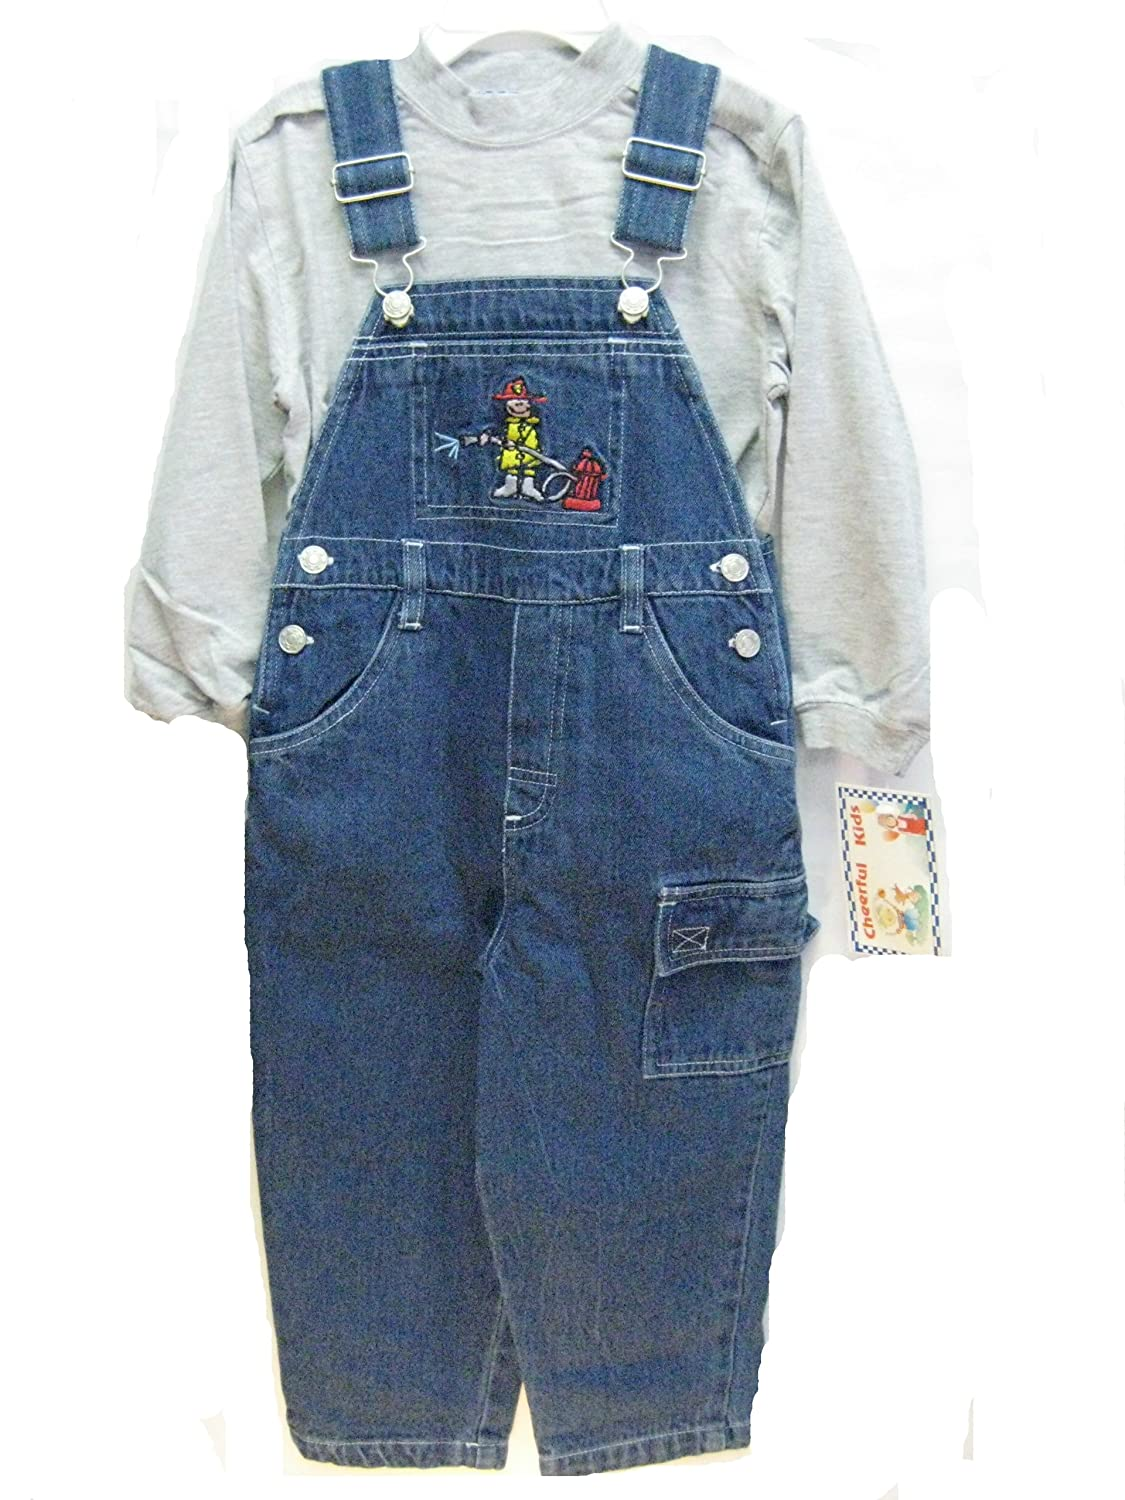 Toddler Boys Sizes 2T/3T/4t Cotton Denim Embroidered Bib Pocket Overall 2-PC Sets